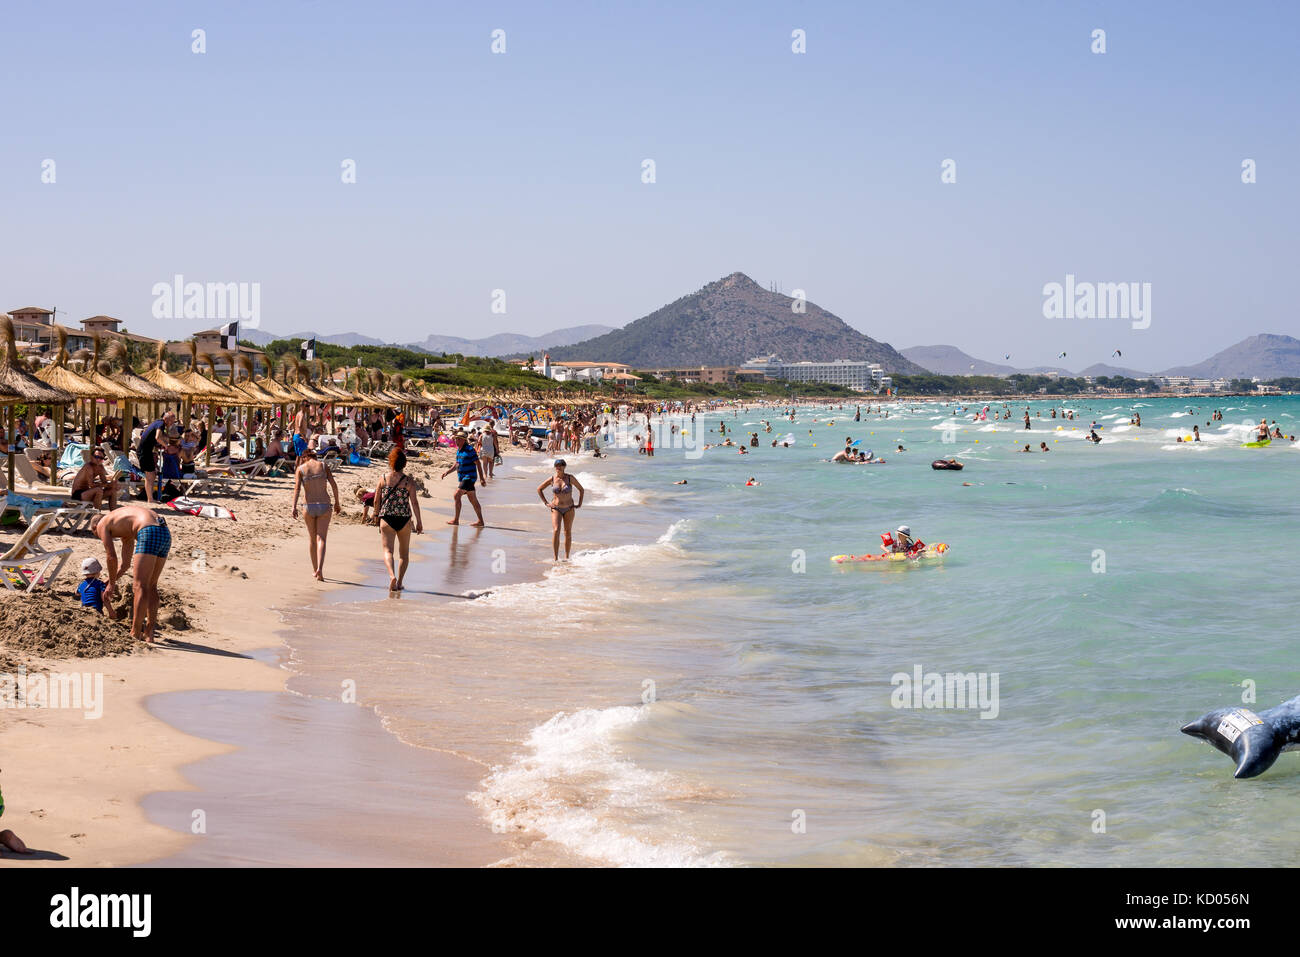 Tourists at Playa de Muro beach in summer peak season near Albufera resorts, Mallorca, Balearic islands - Stock Image